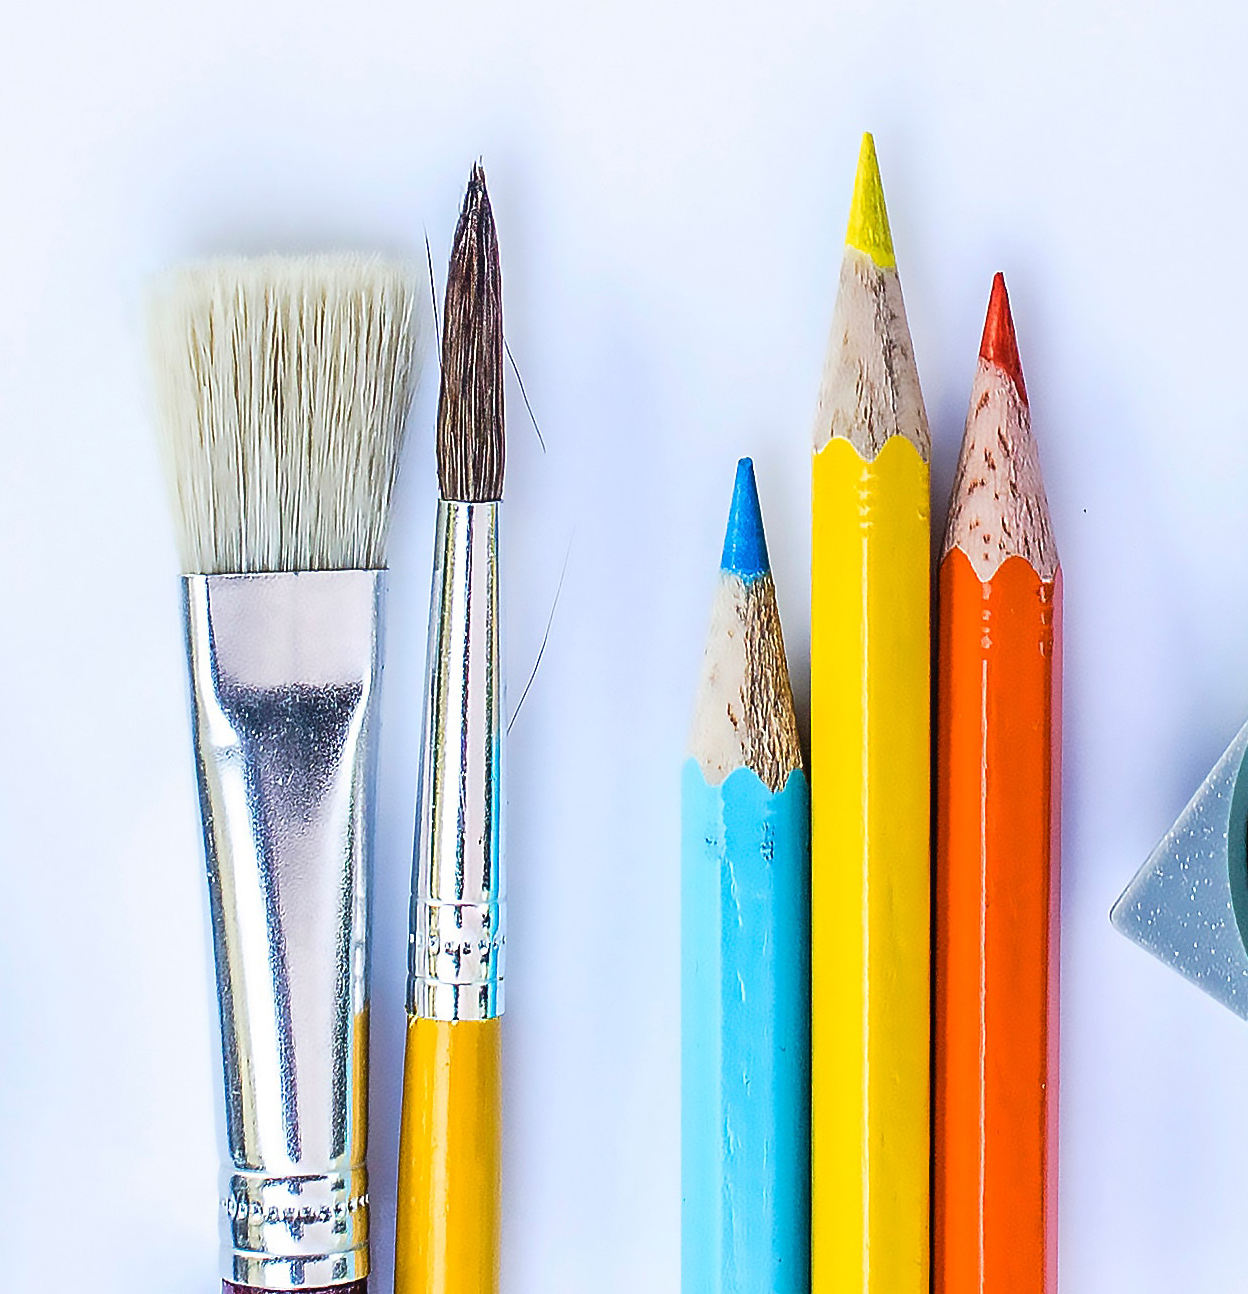 Image of paintbrushes and colouring pencils